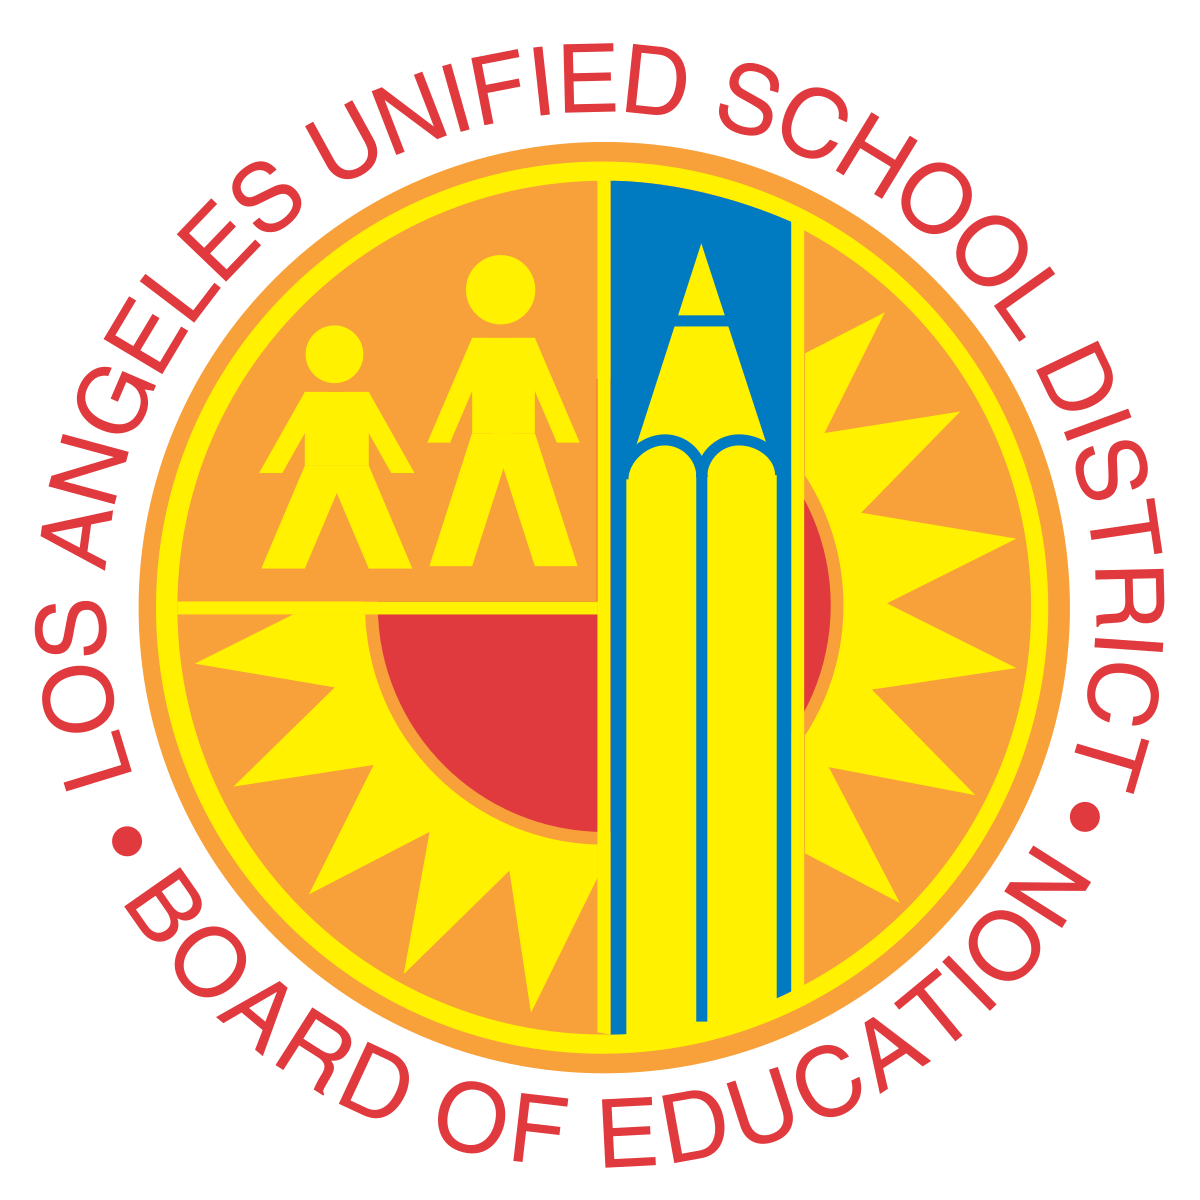 http://www.laschools.org/new-site/prequalification/ -